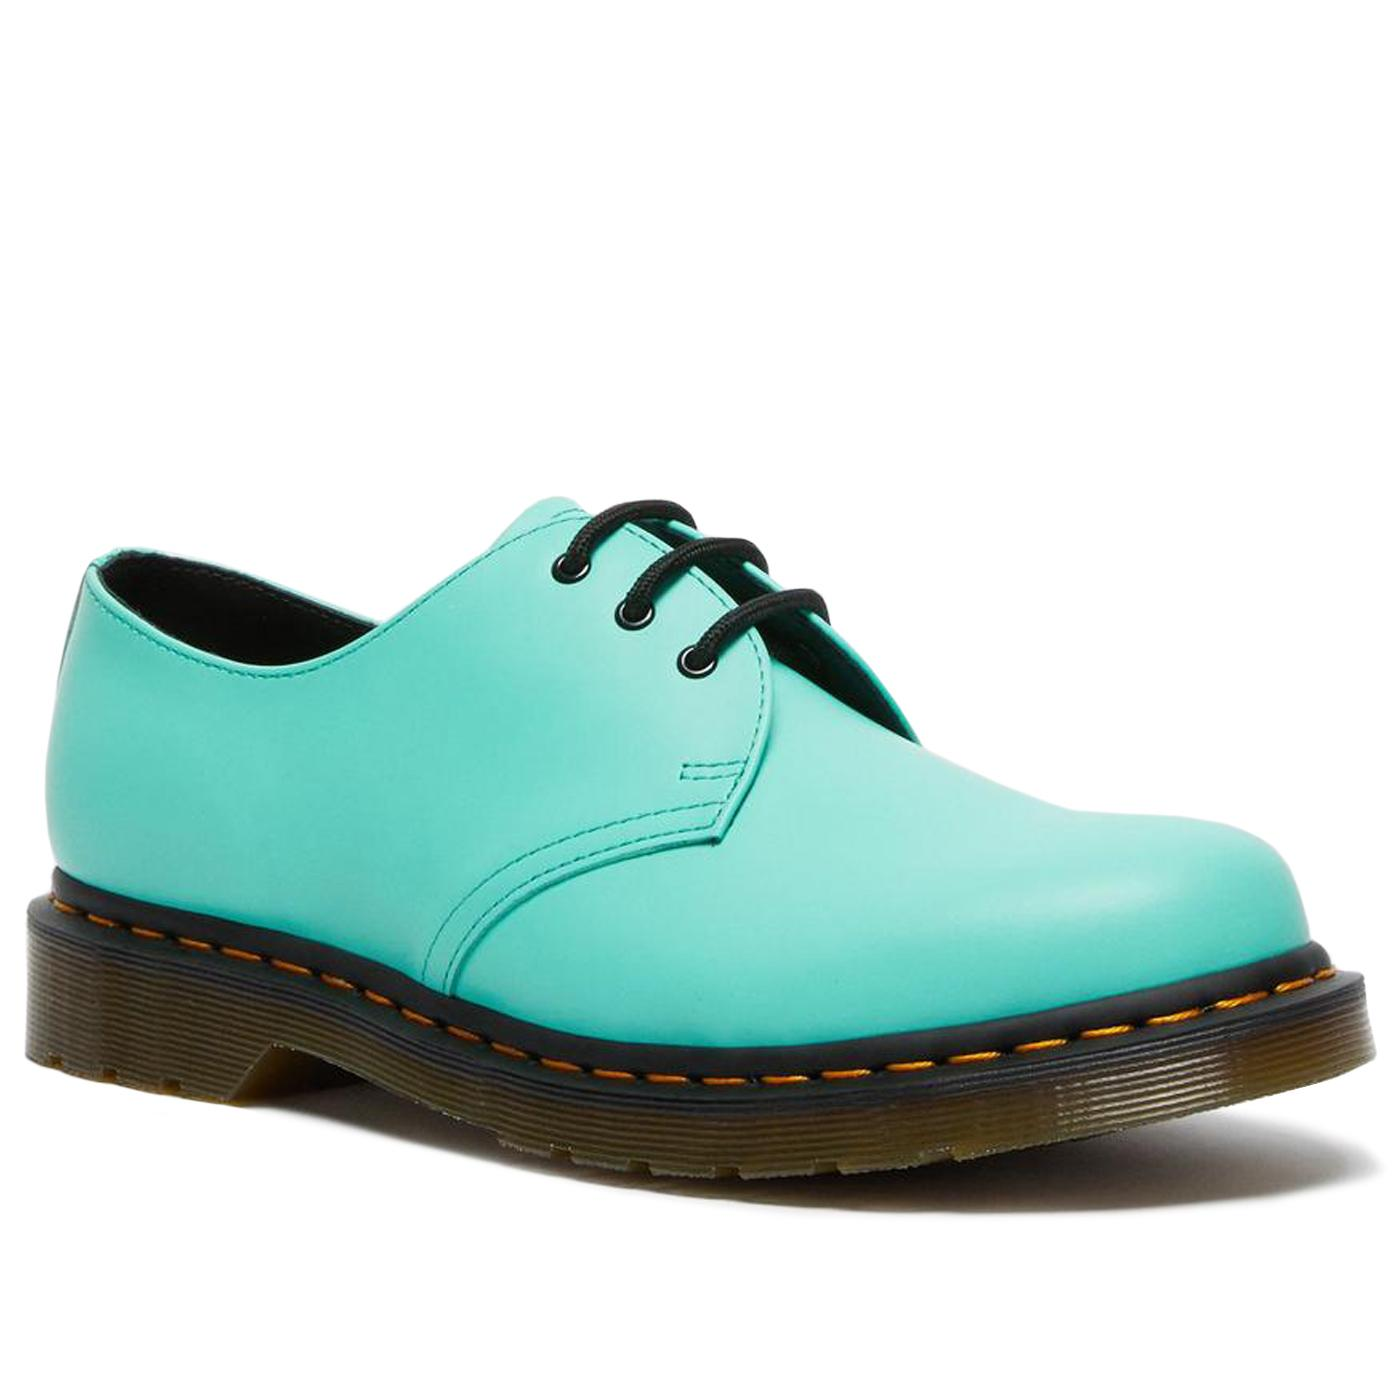 1461 DR MARTENS Smooth Oxford Shoes PEPPERMINT